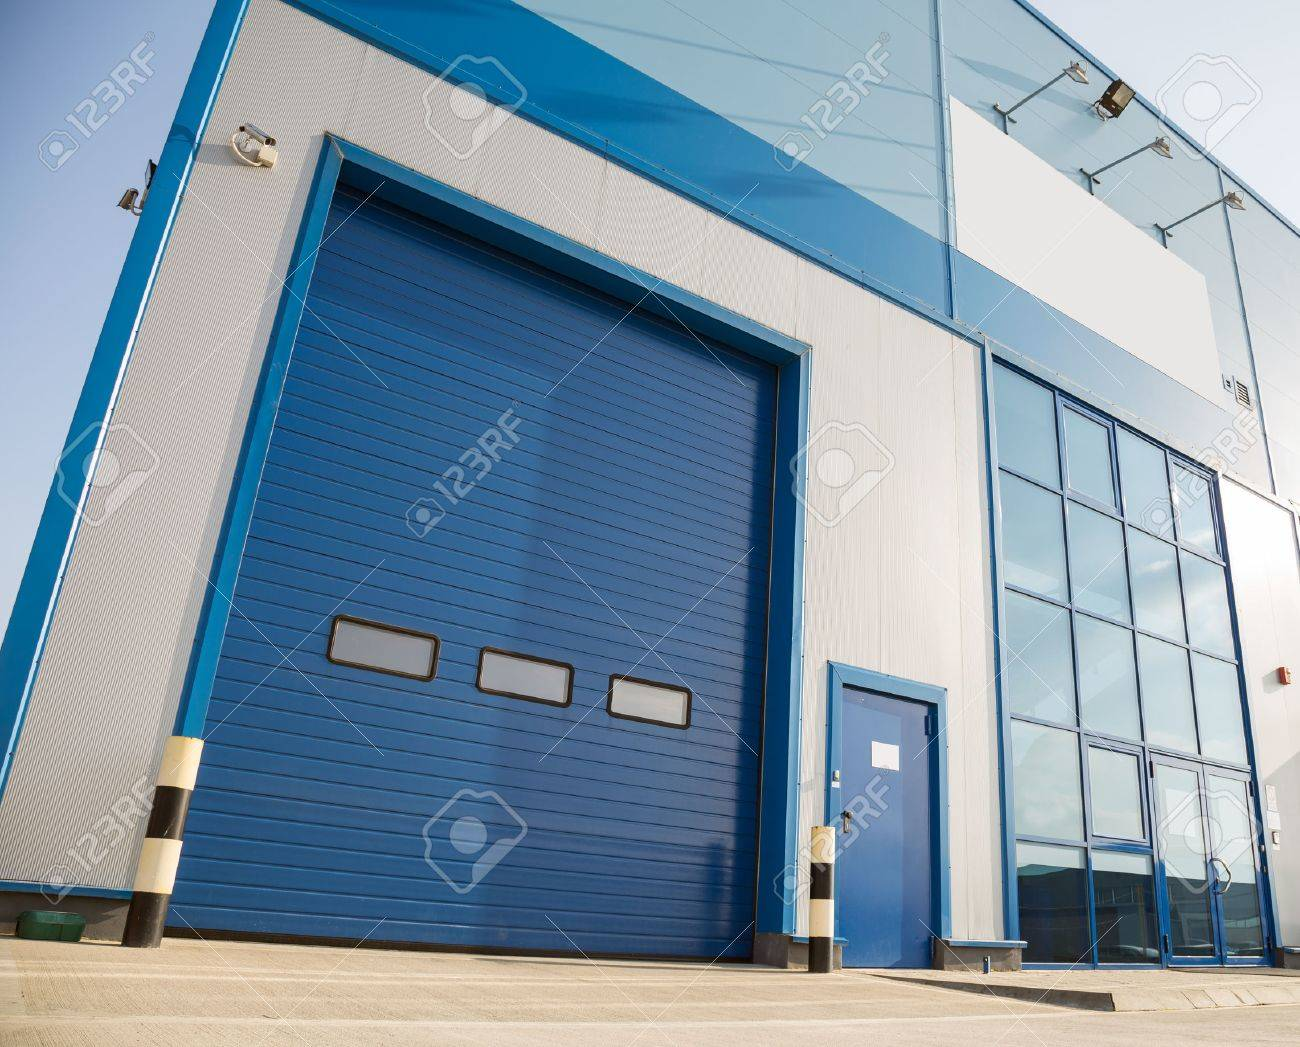 Modern industrial building with big blue garage door stock photo modern industrial building with big blue garage door stock photo 55088483 rubansaba